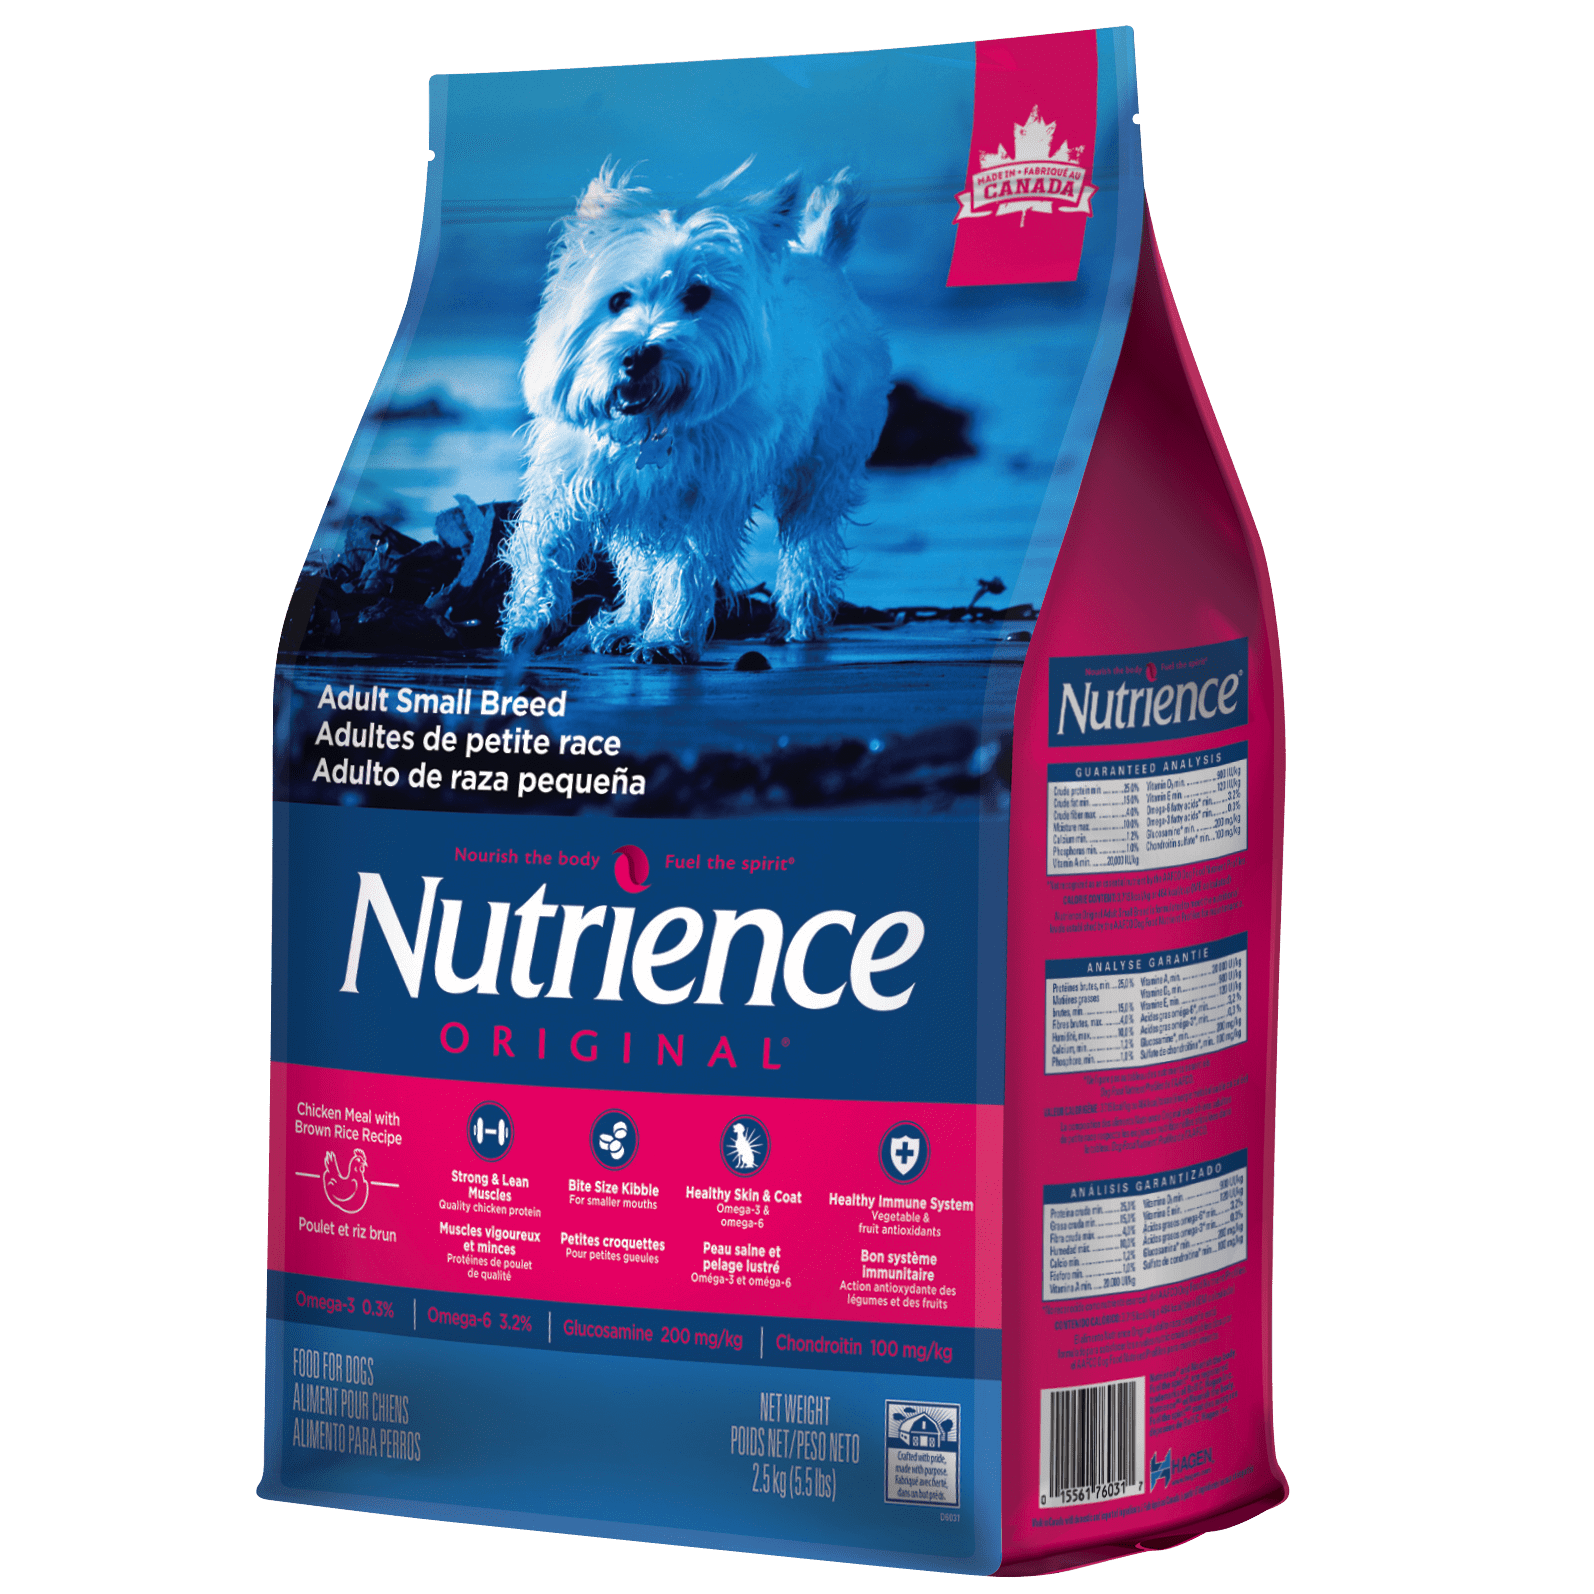 Nutrience Original Adult Dog Small Breed, Chicken & Brown Rice